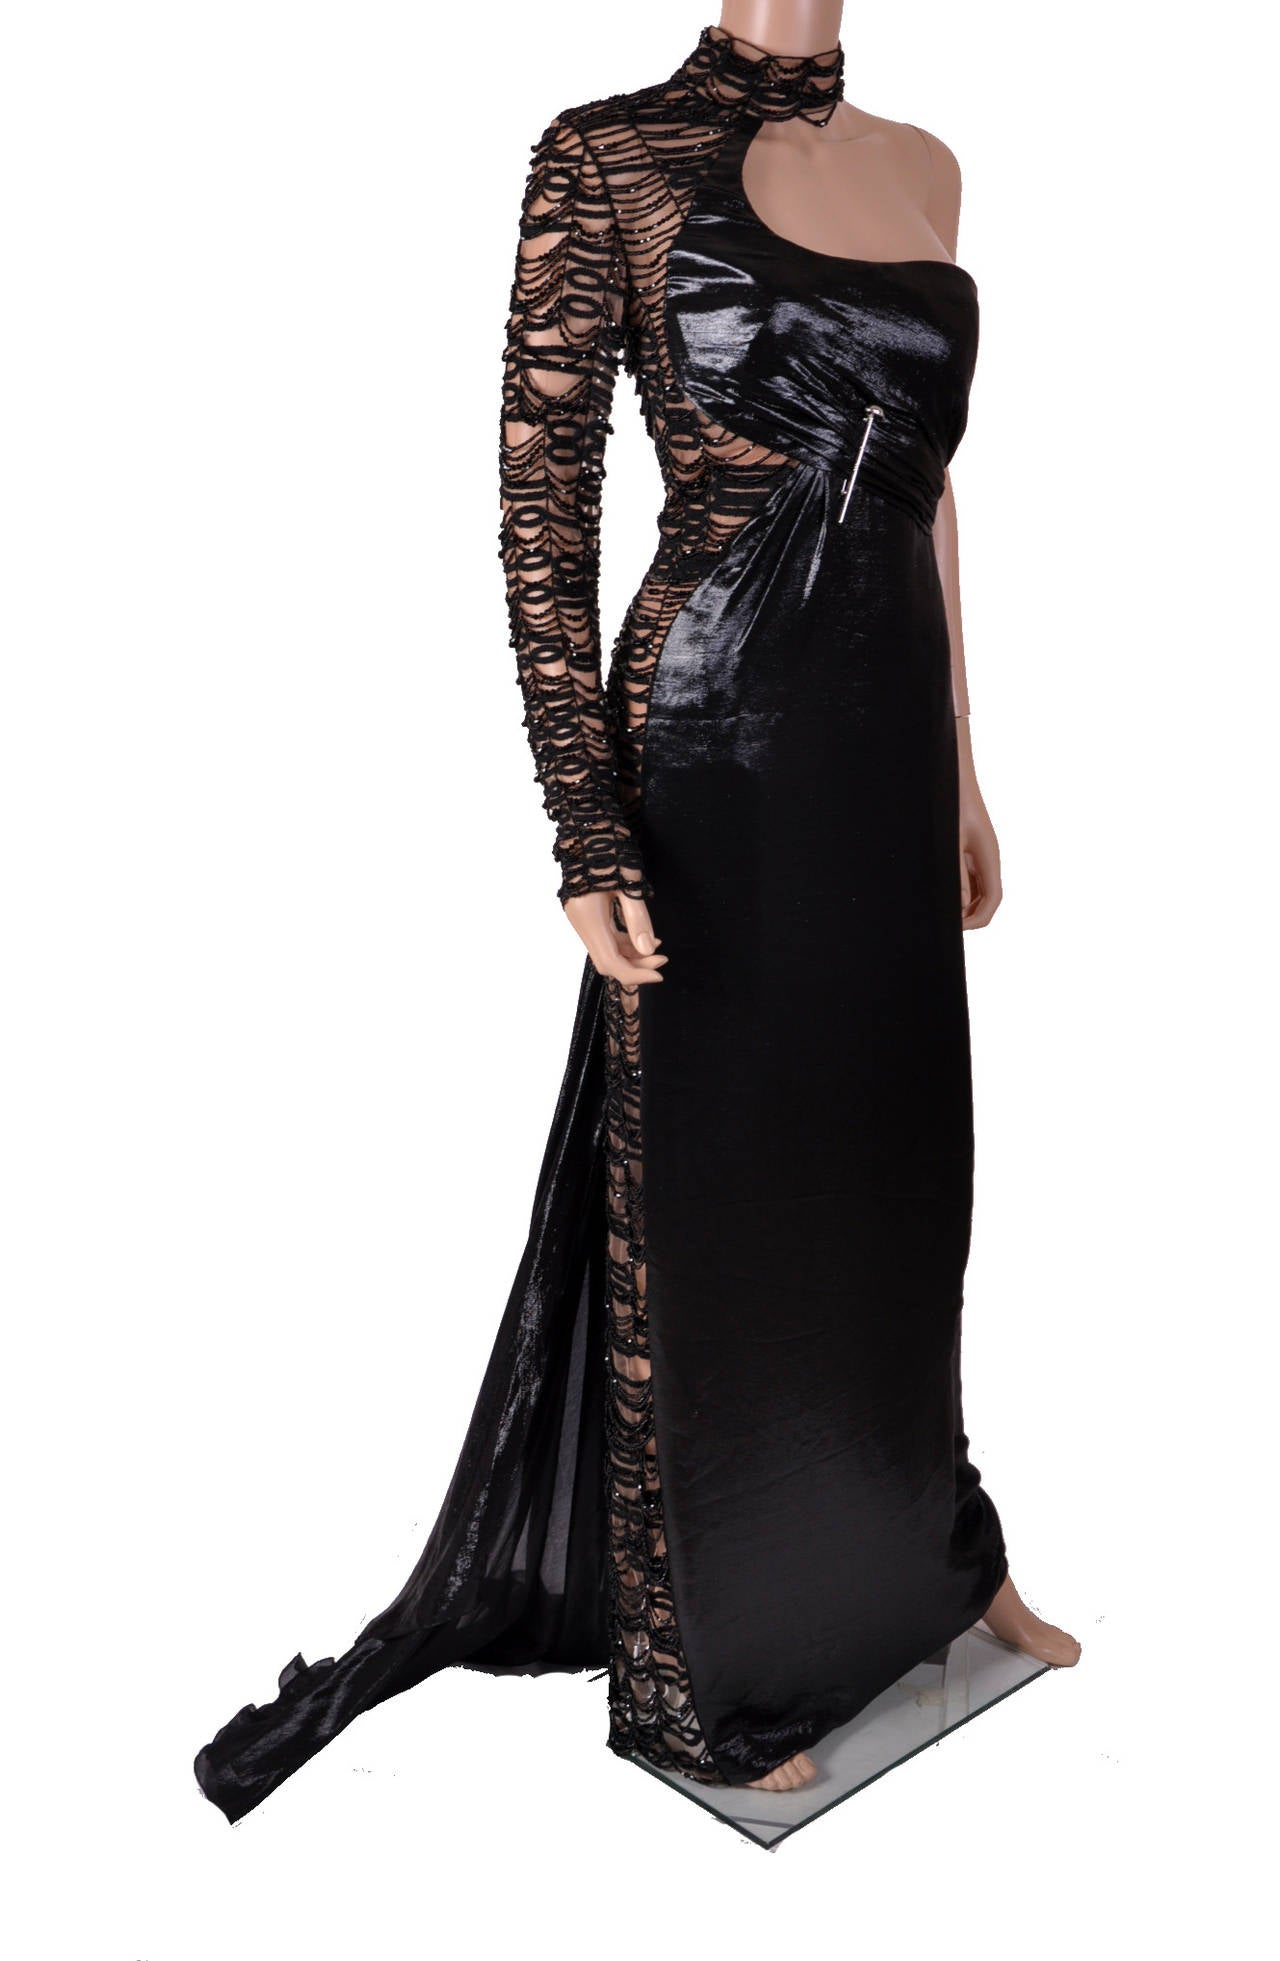 new versace black embellished gown for sale at 1stdibs